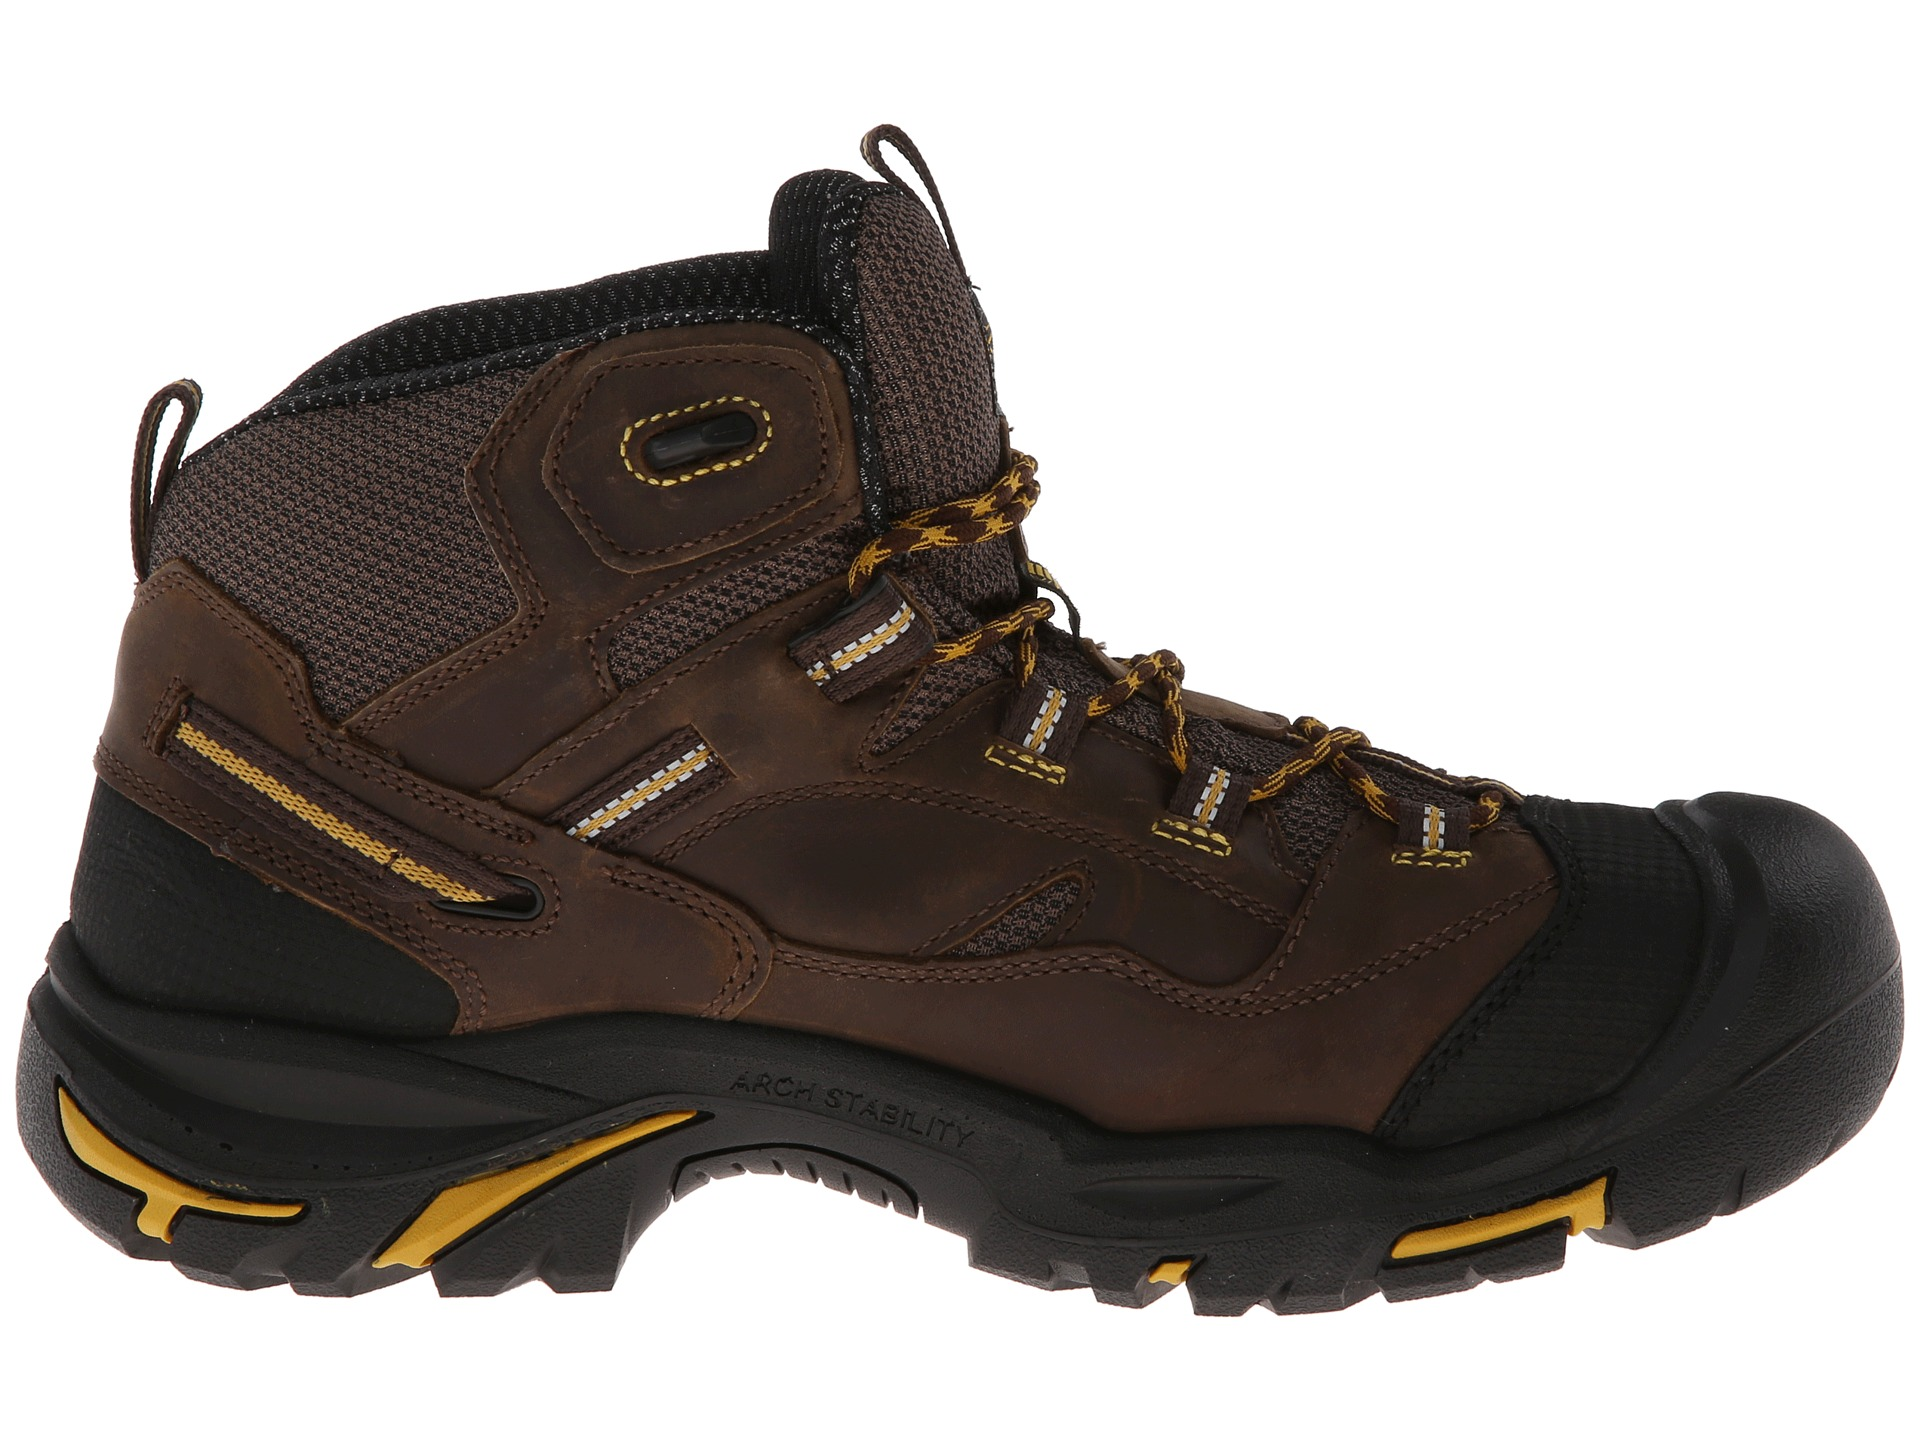 6 Work Boots To Comfort Your Feet In The Toughest